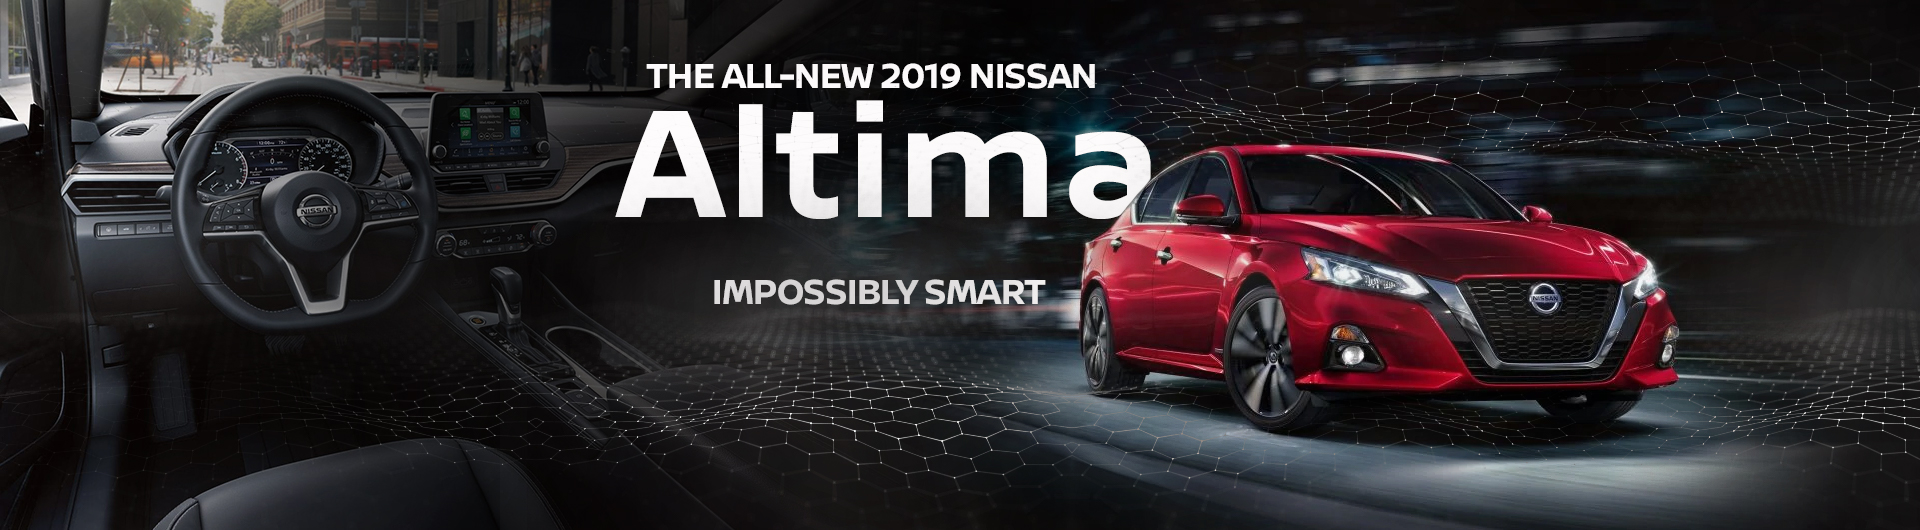 A New 2019 Nissan Altima at Jackie Cooper Nissan in Tulsa Oklahoma